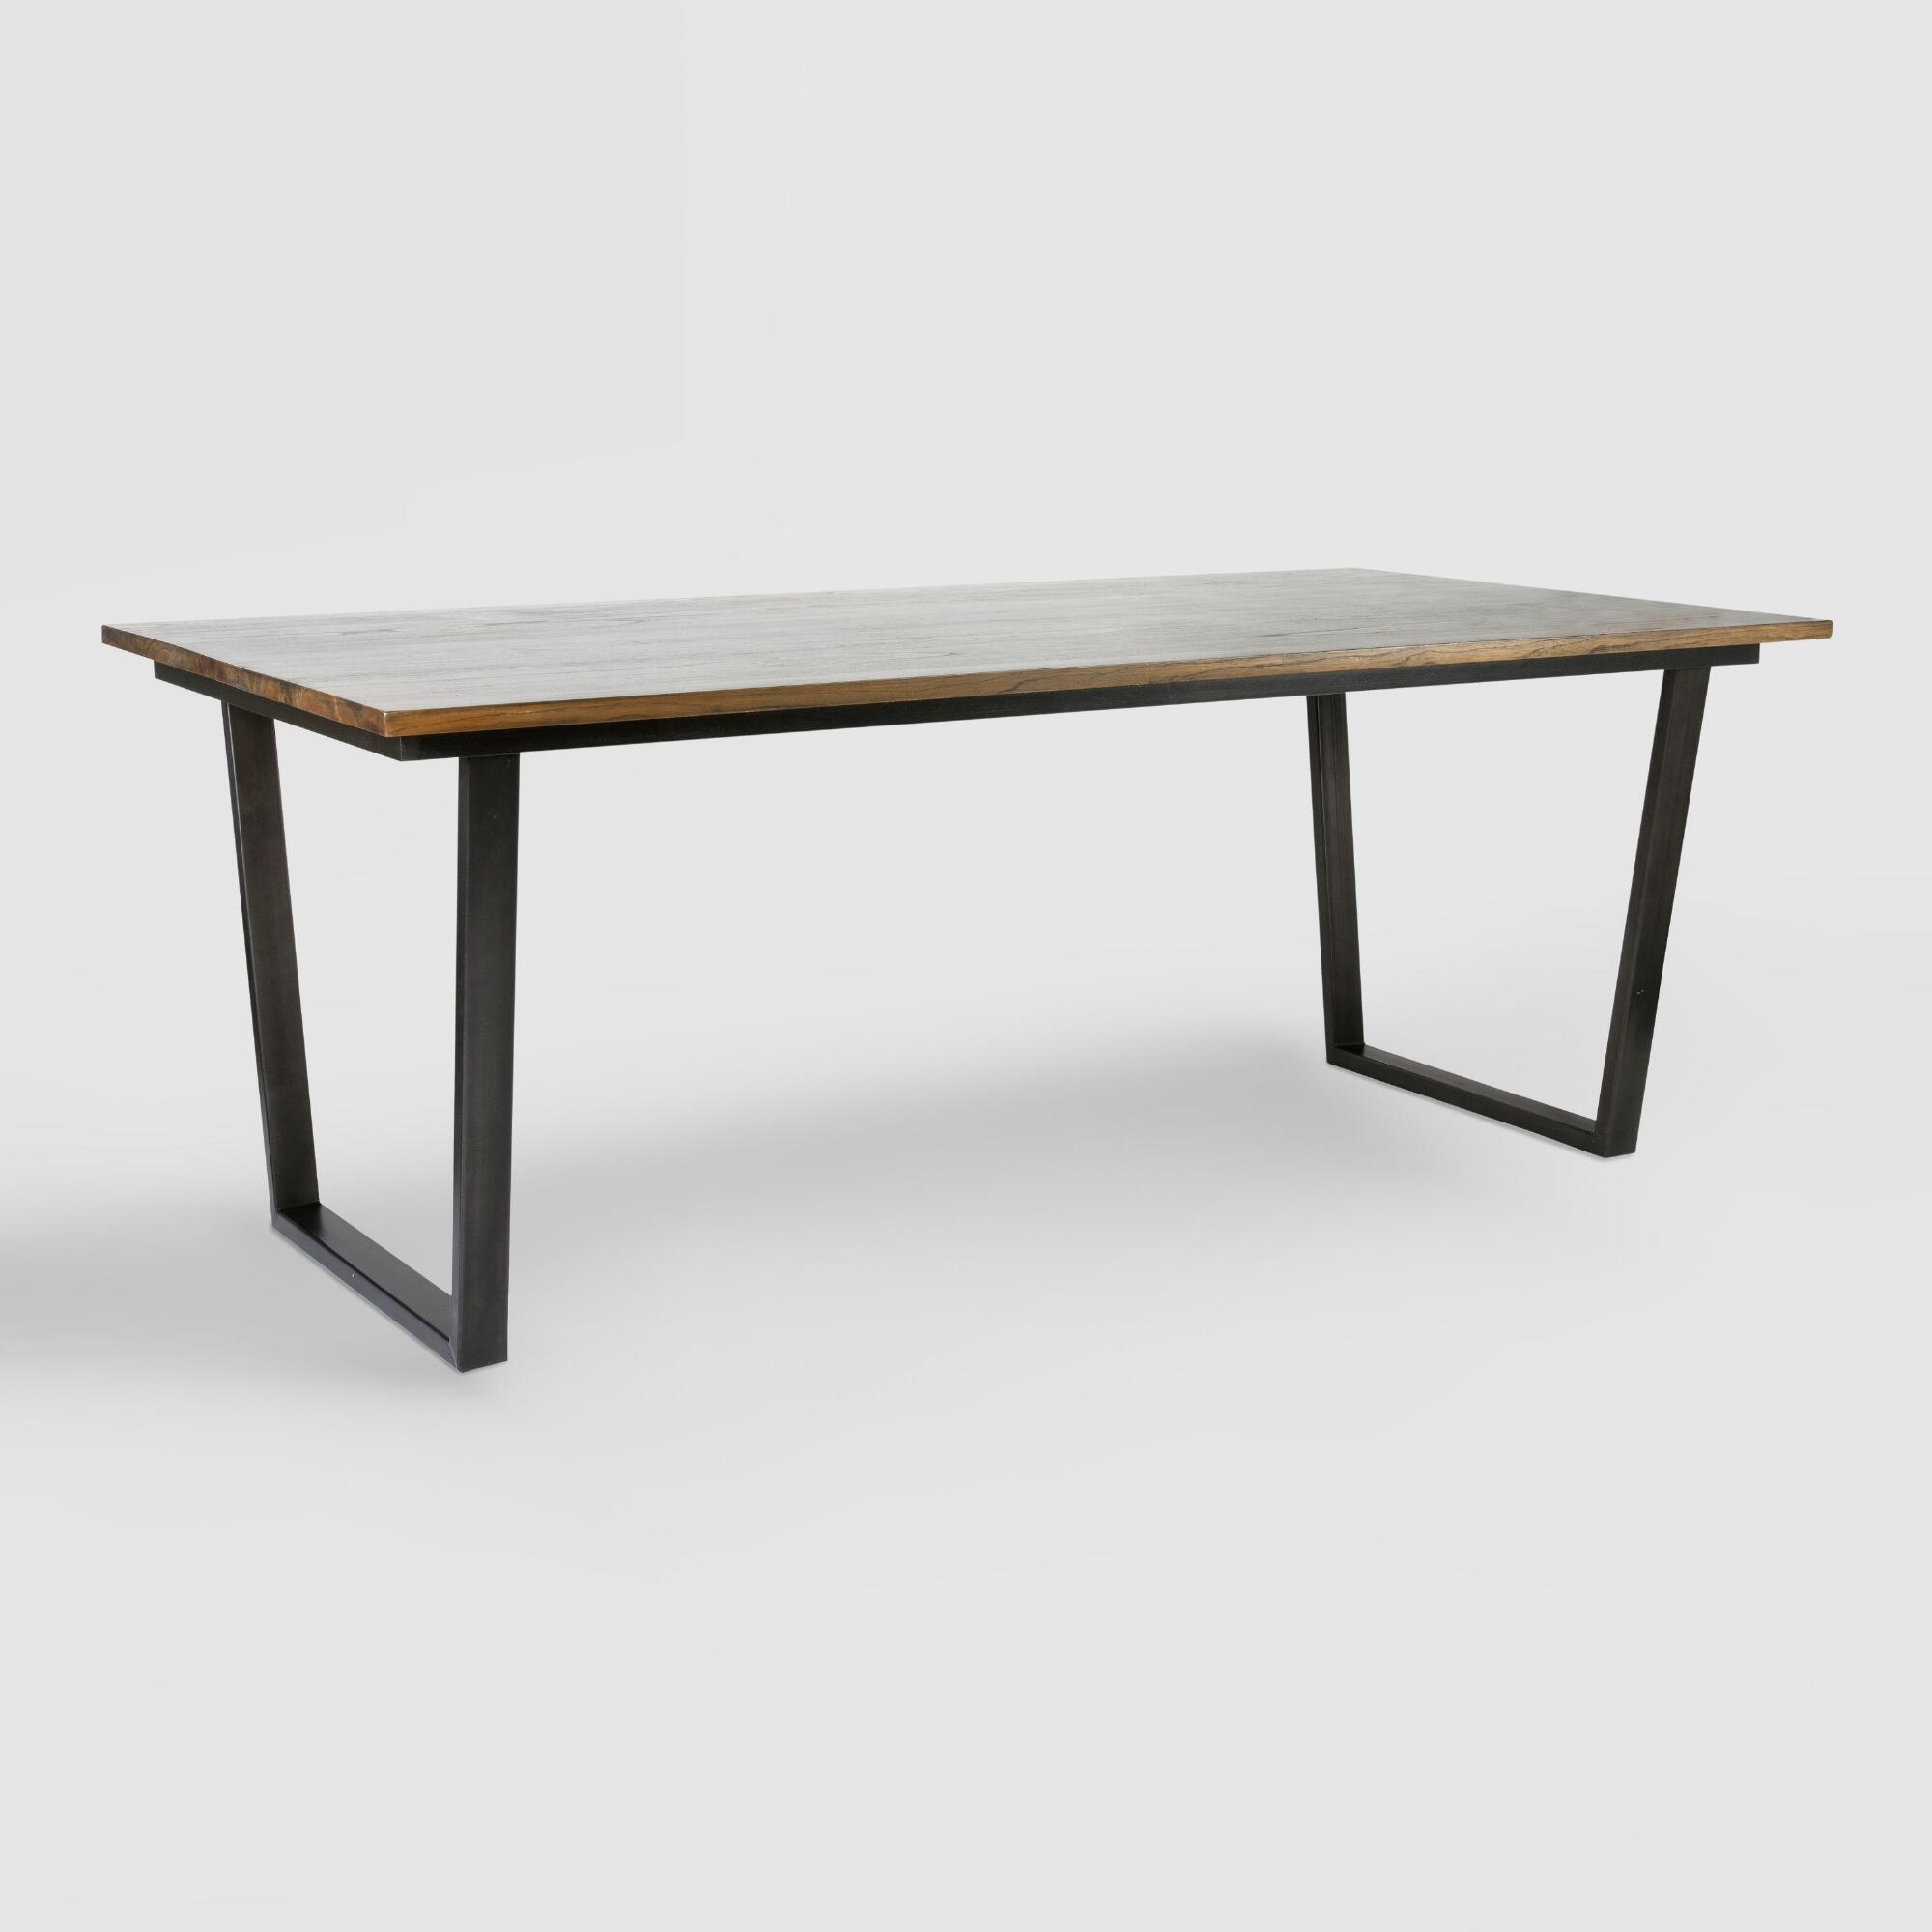 Wood and metal ryley dining table world market for Metal dining table